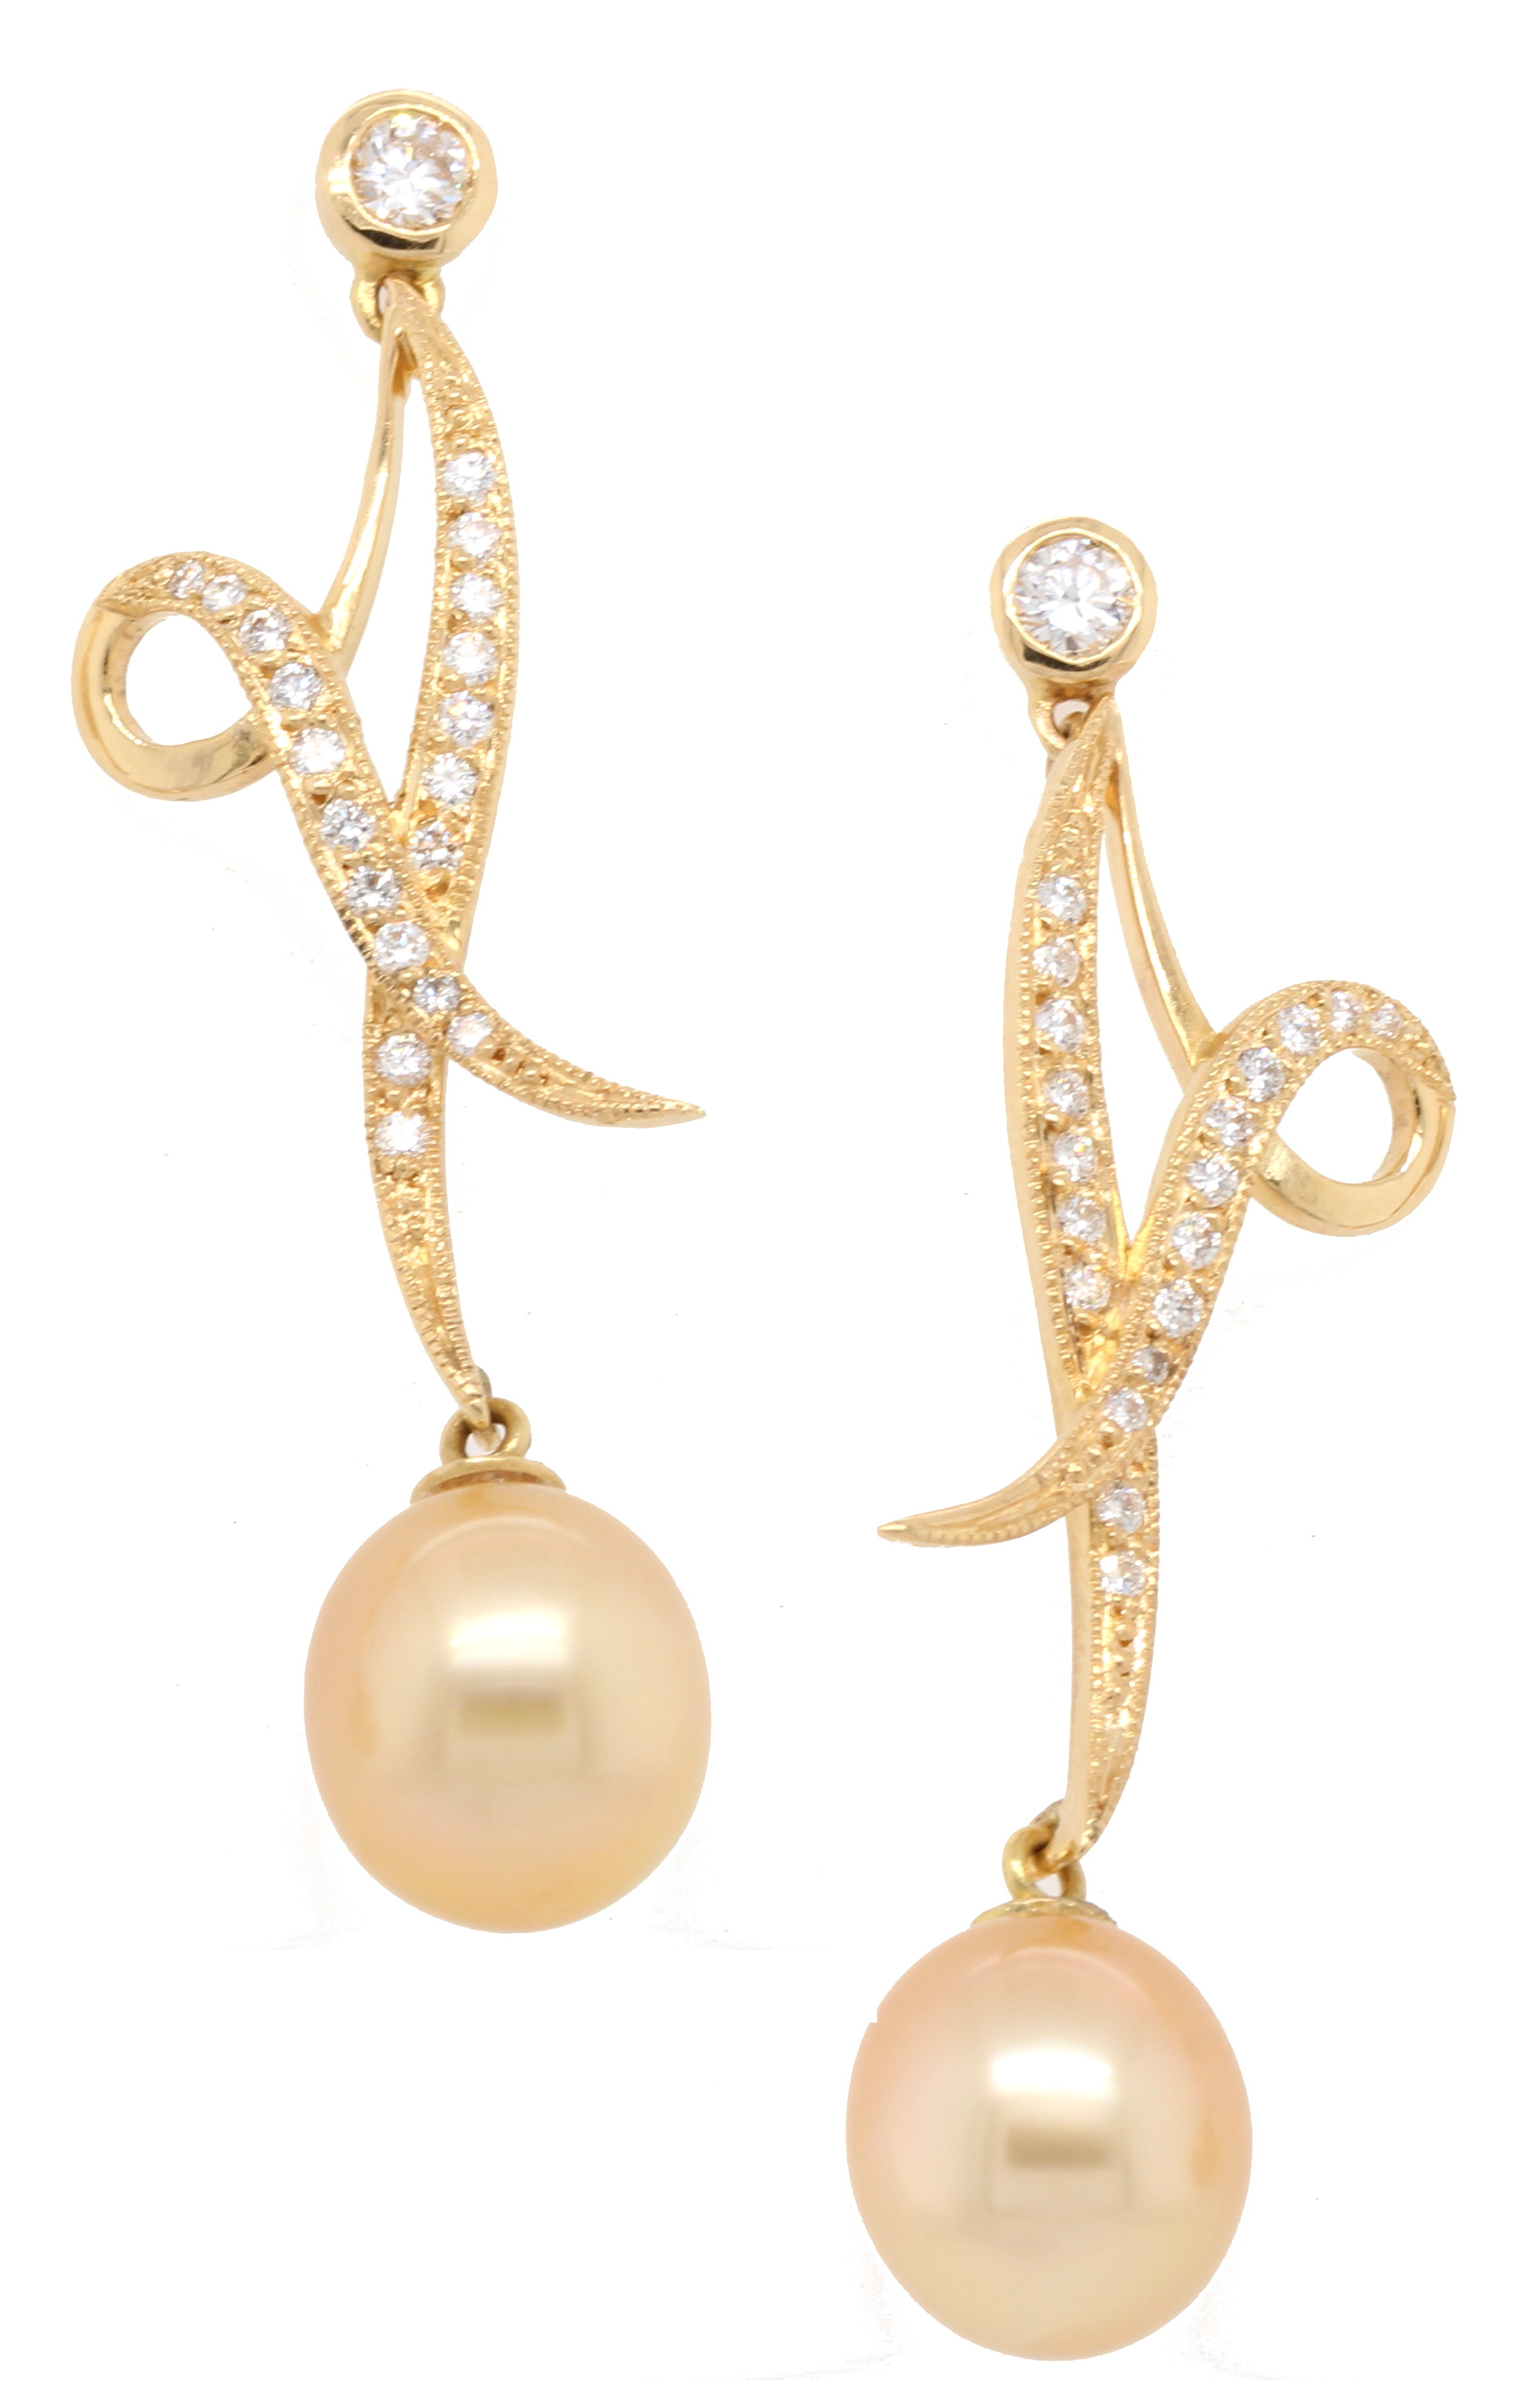 Diamond-set ribbon drop earrings supporting golden South Sea pearls